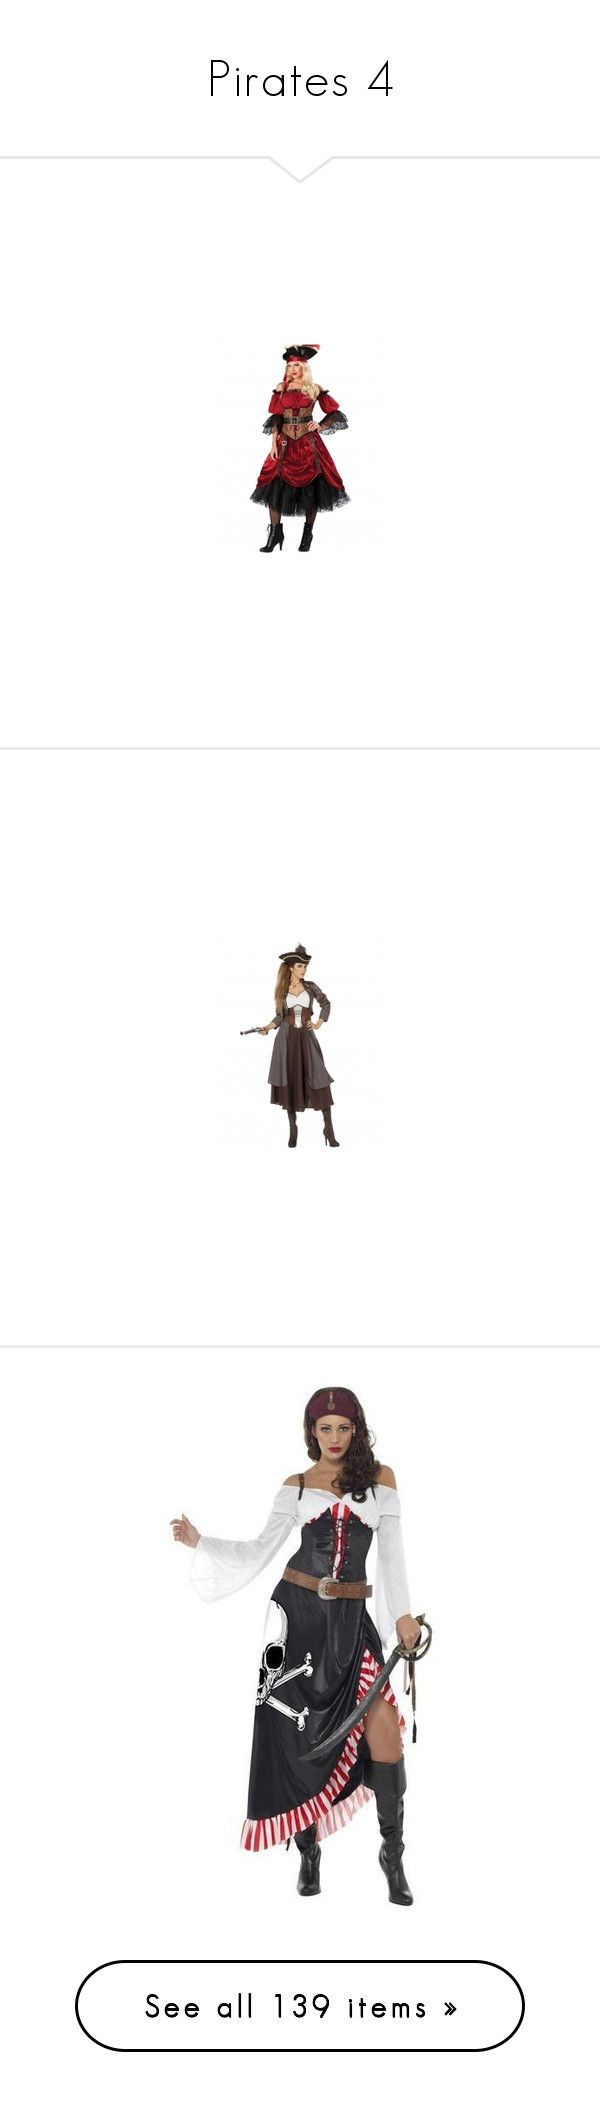 """""""Pirates 4"""" by selene-cinzia ❤ liked on Polyvore featuring costumes, halloween, sexy pirate costume, pirate costume, fringe costume, sexy pirate halloween costume, pirate halloween costume, dresses, outfit and halloween costumes"""